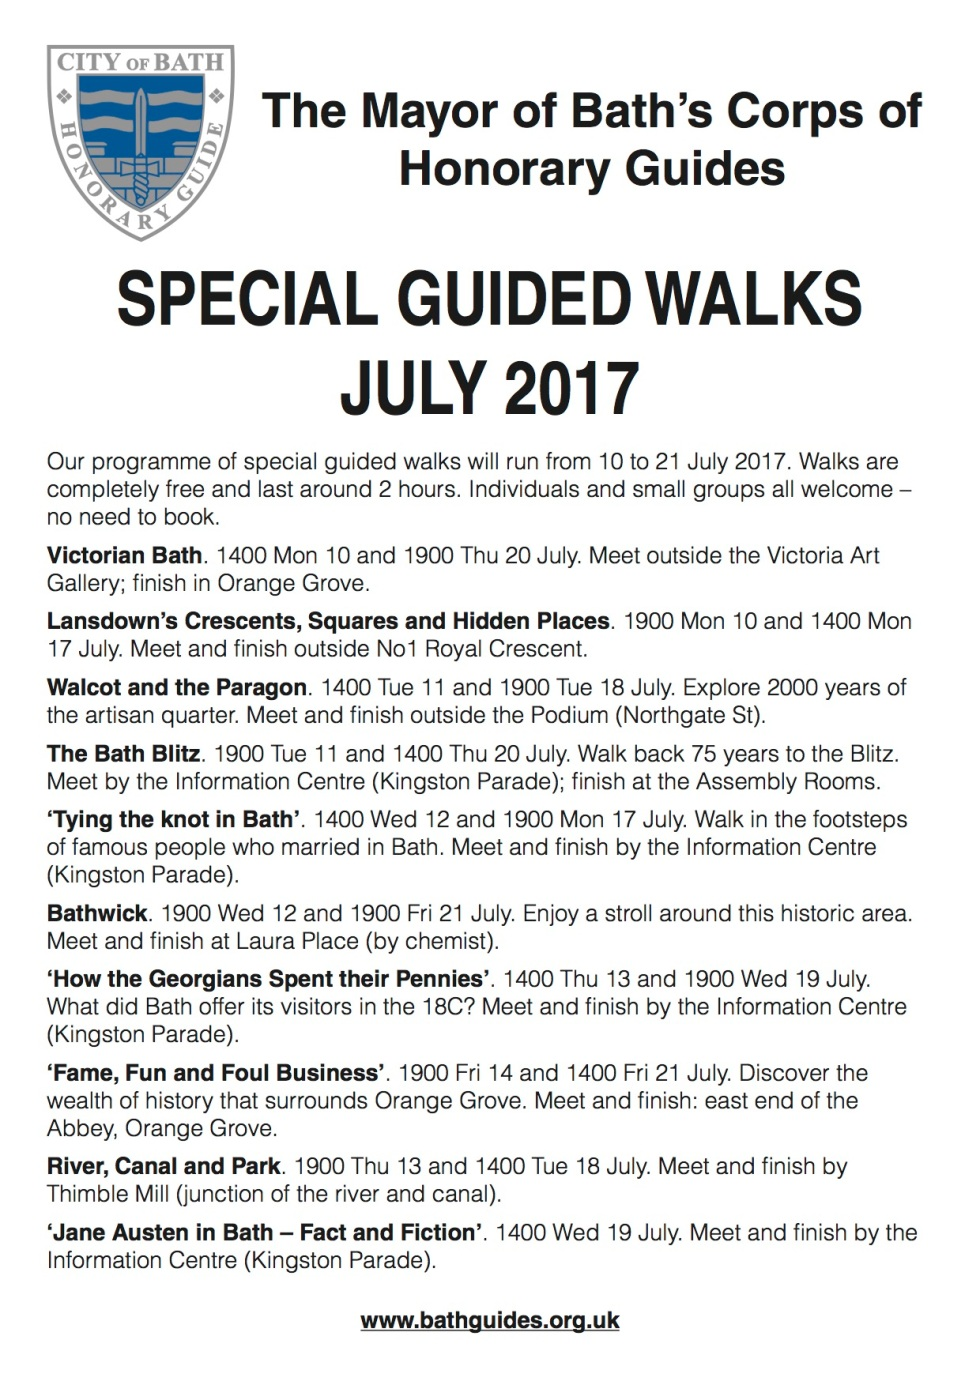 DP 5426 - Special Walking Tours Poster May 2017